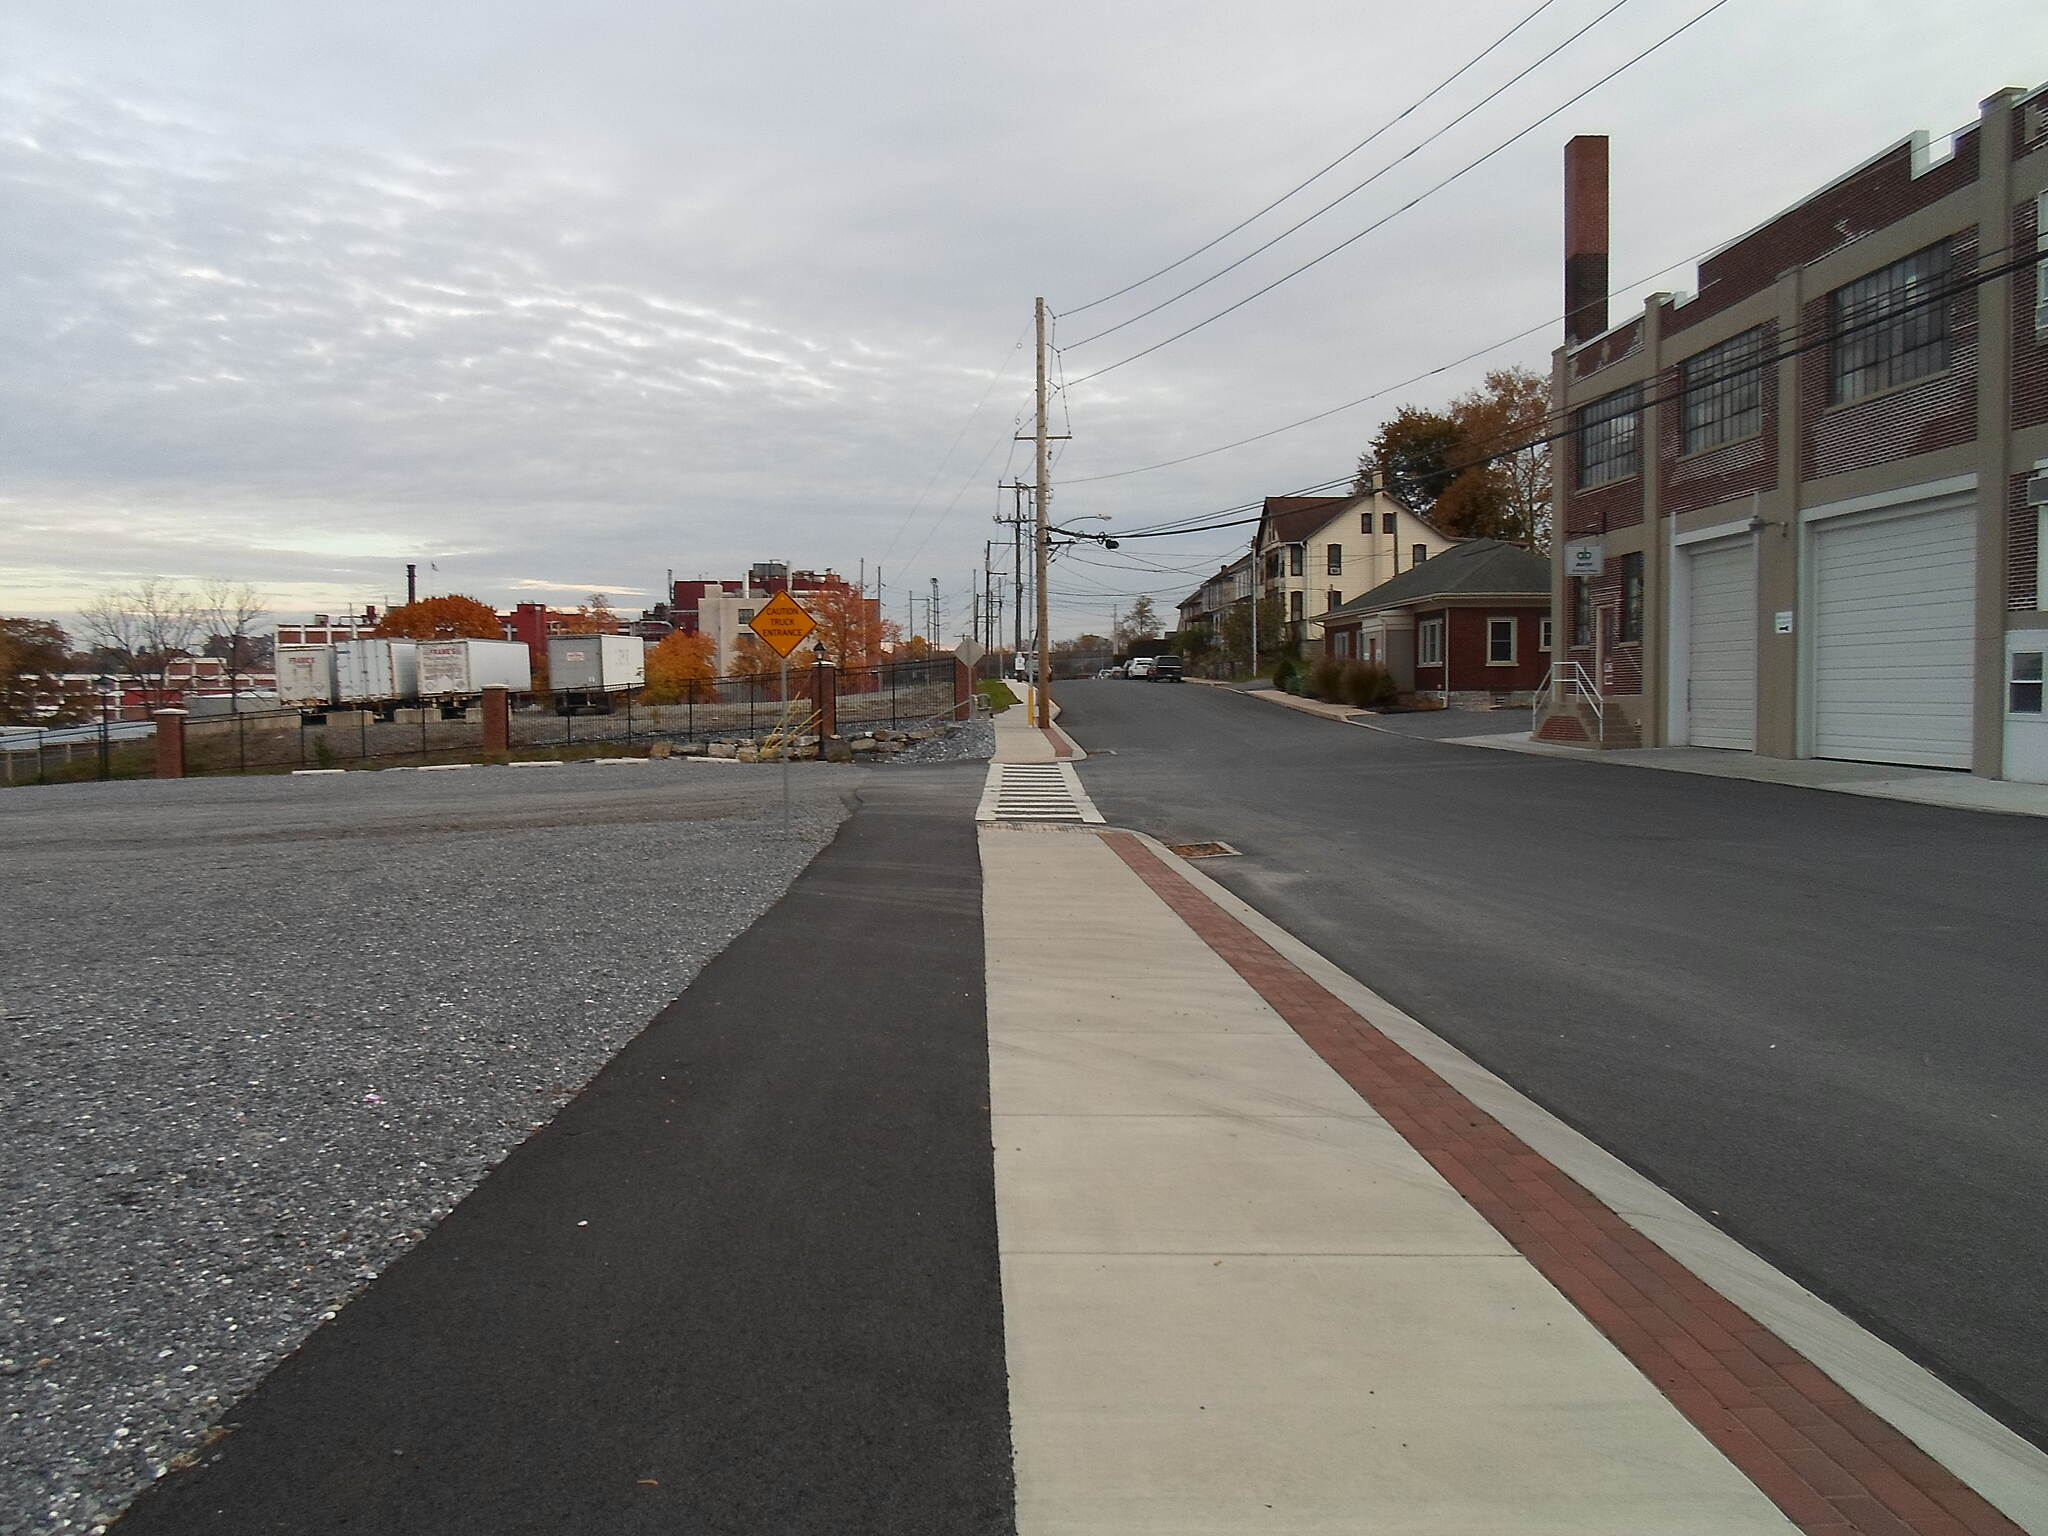 Elizabethtown Connector Trail Elizabethtown Connector Trail The trail briefly parallels Brown Street on this sidewalk, which has been widened with an asphalt section on the east side. Taken Oct. 2015.